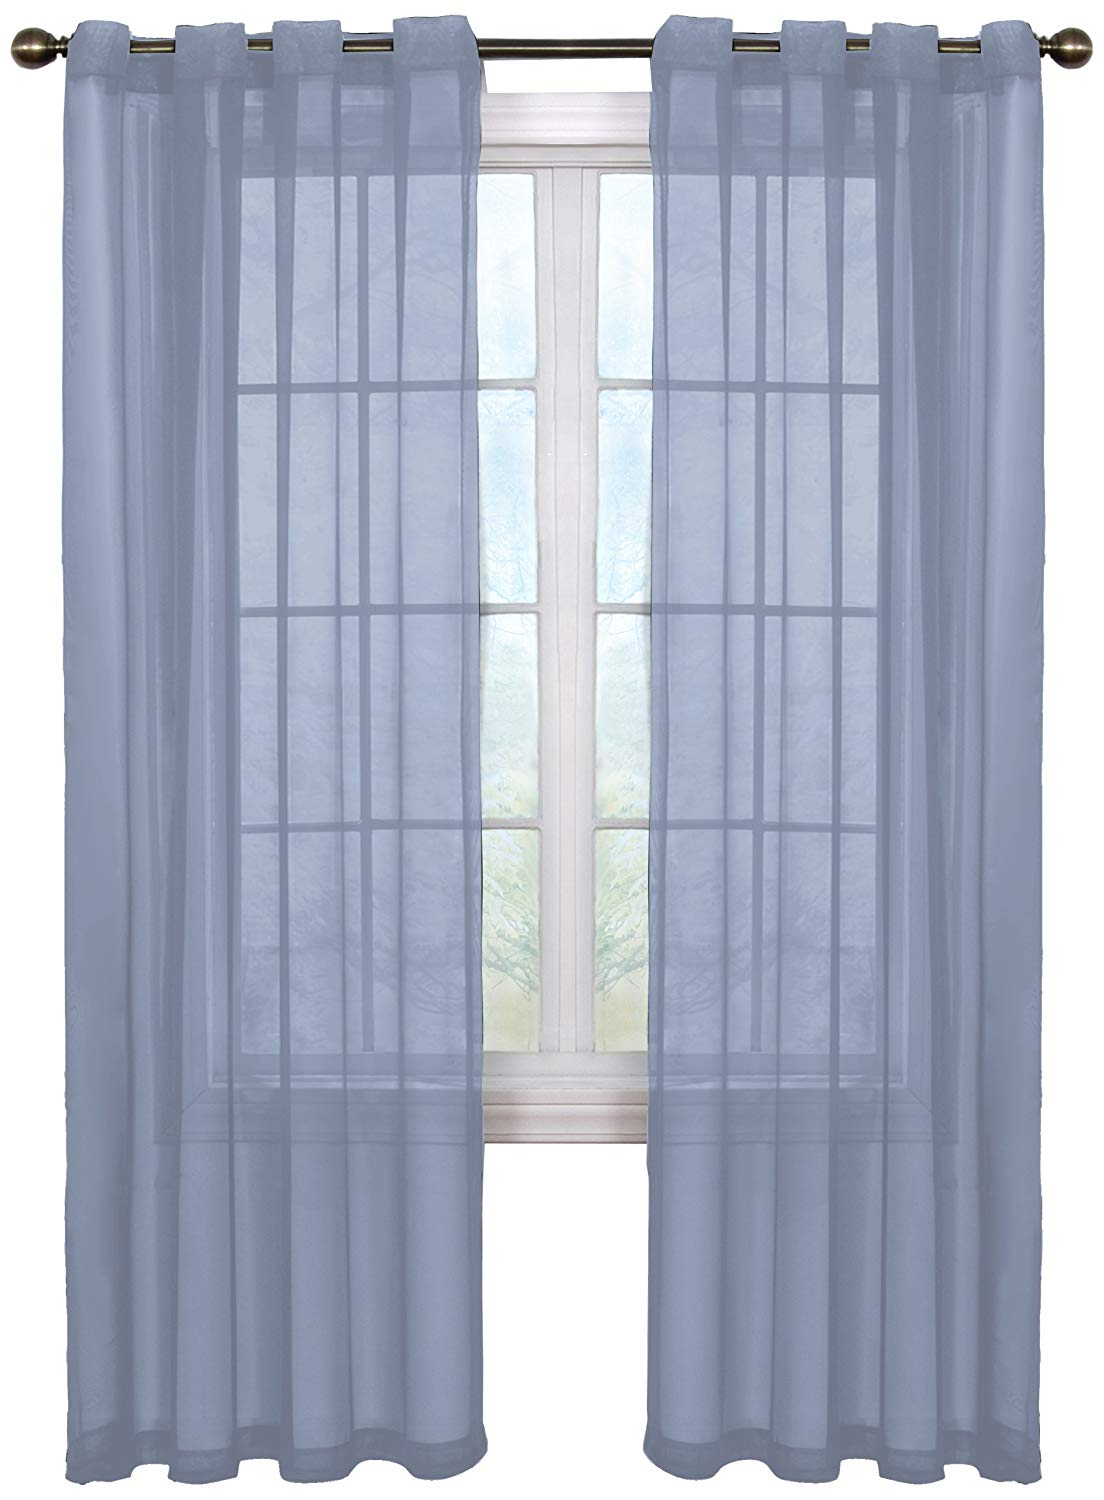 Buy Arm And Hammer Curtain Fresh Odor Neutralizing Sheer For Most Recently Released Arm And Hammer Curtains Fresh Odor Neutralizing Single Curtain Panels (View 14 of 20)